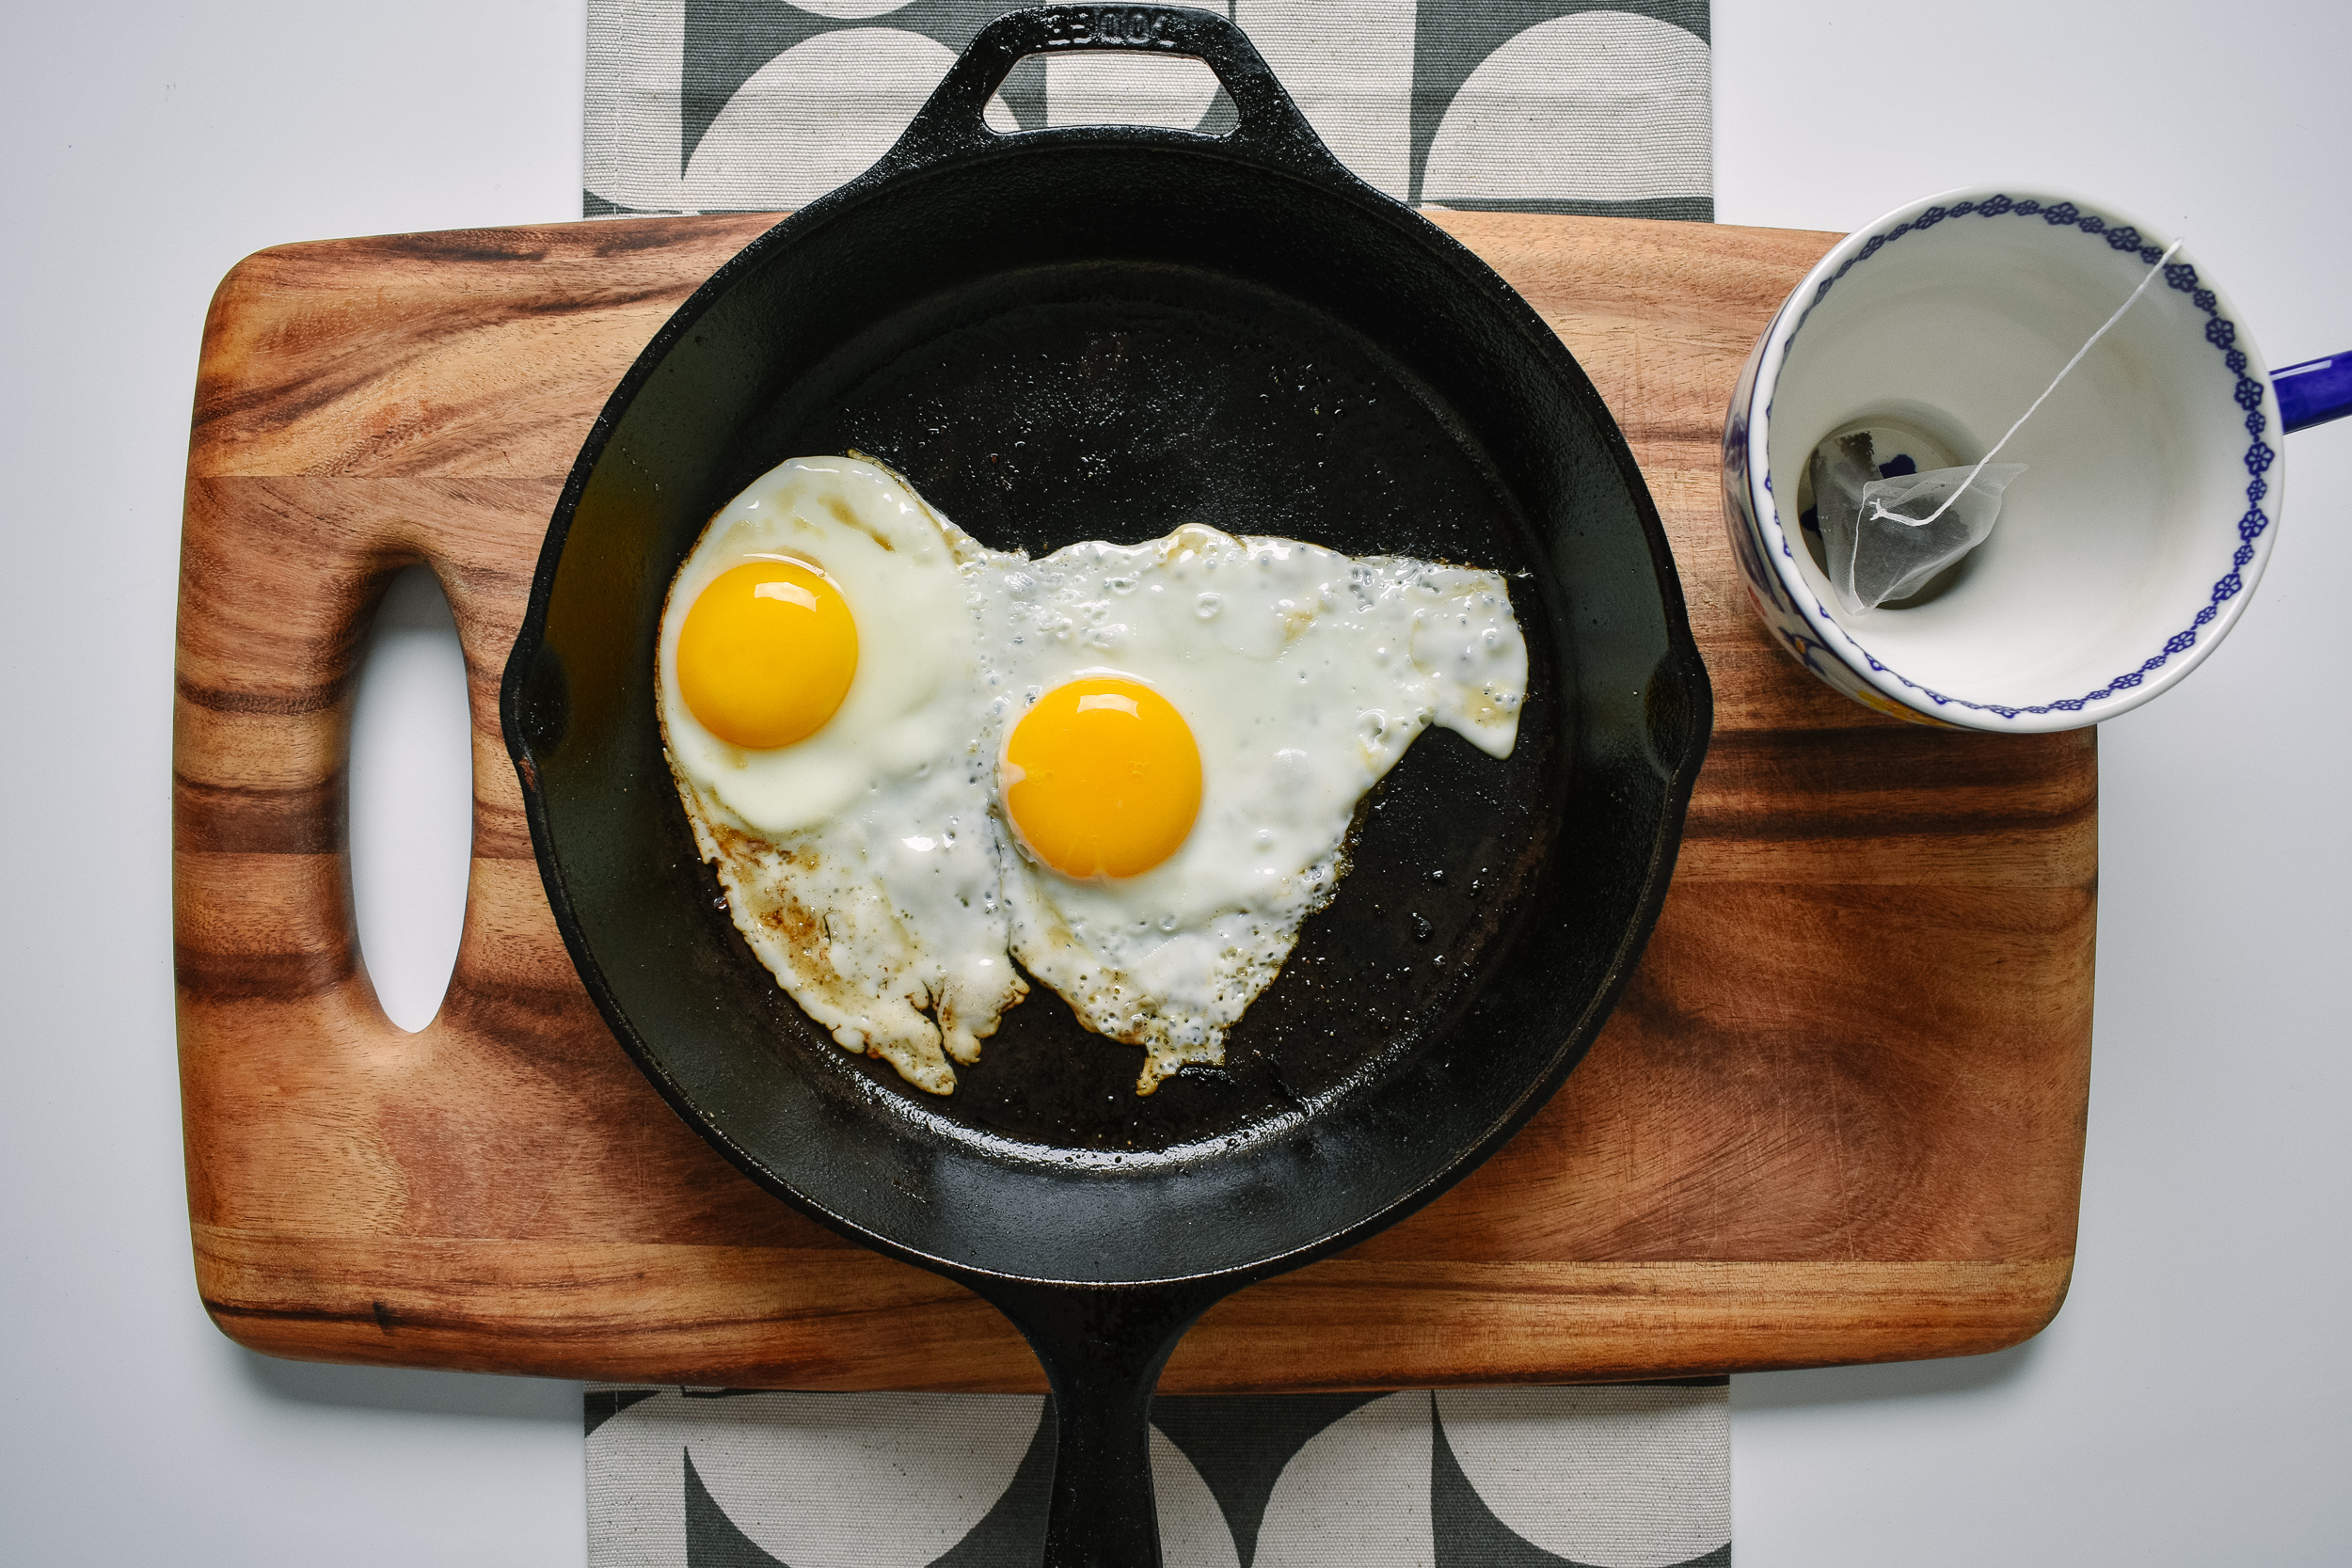 Plate that up and fry the eggs